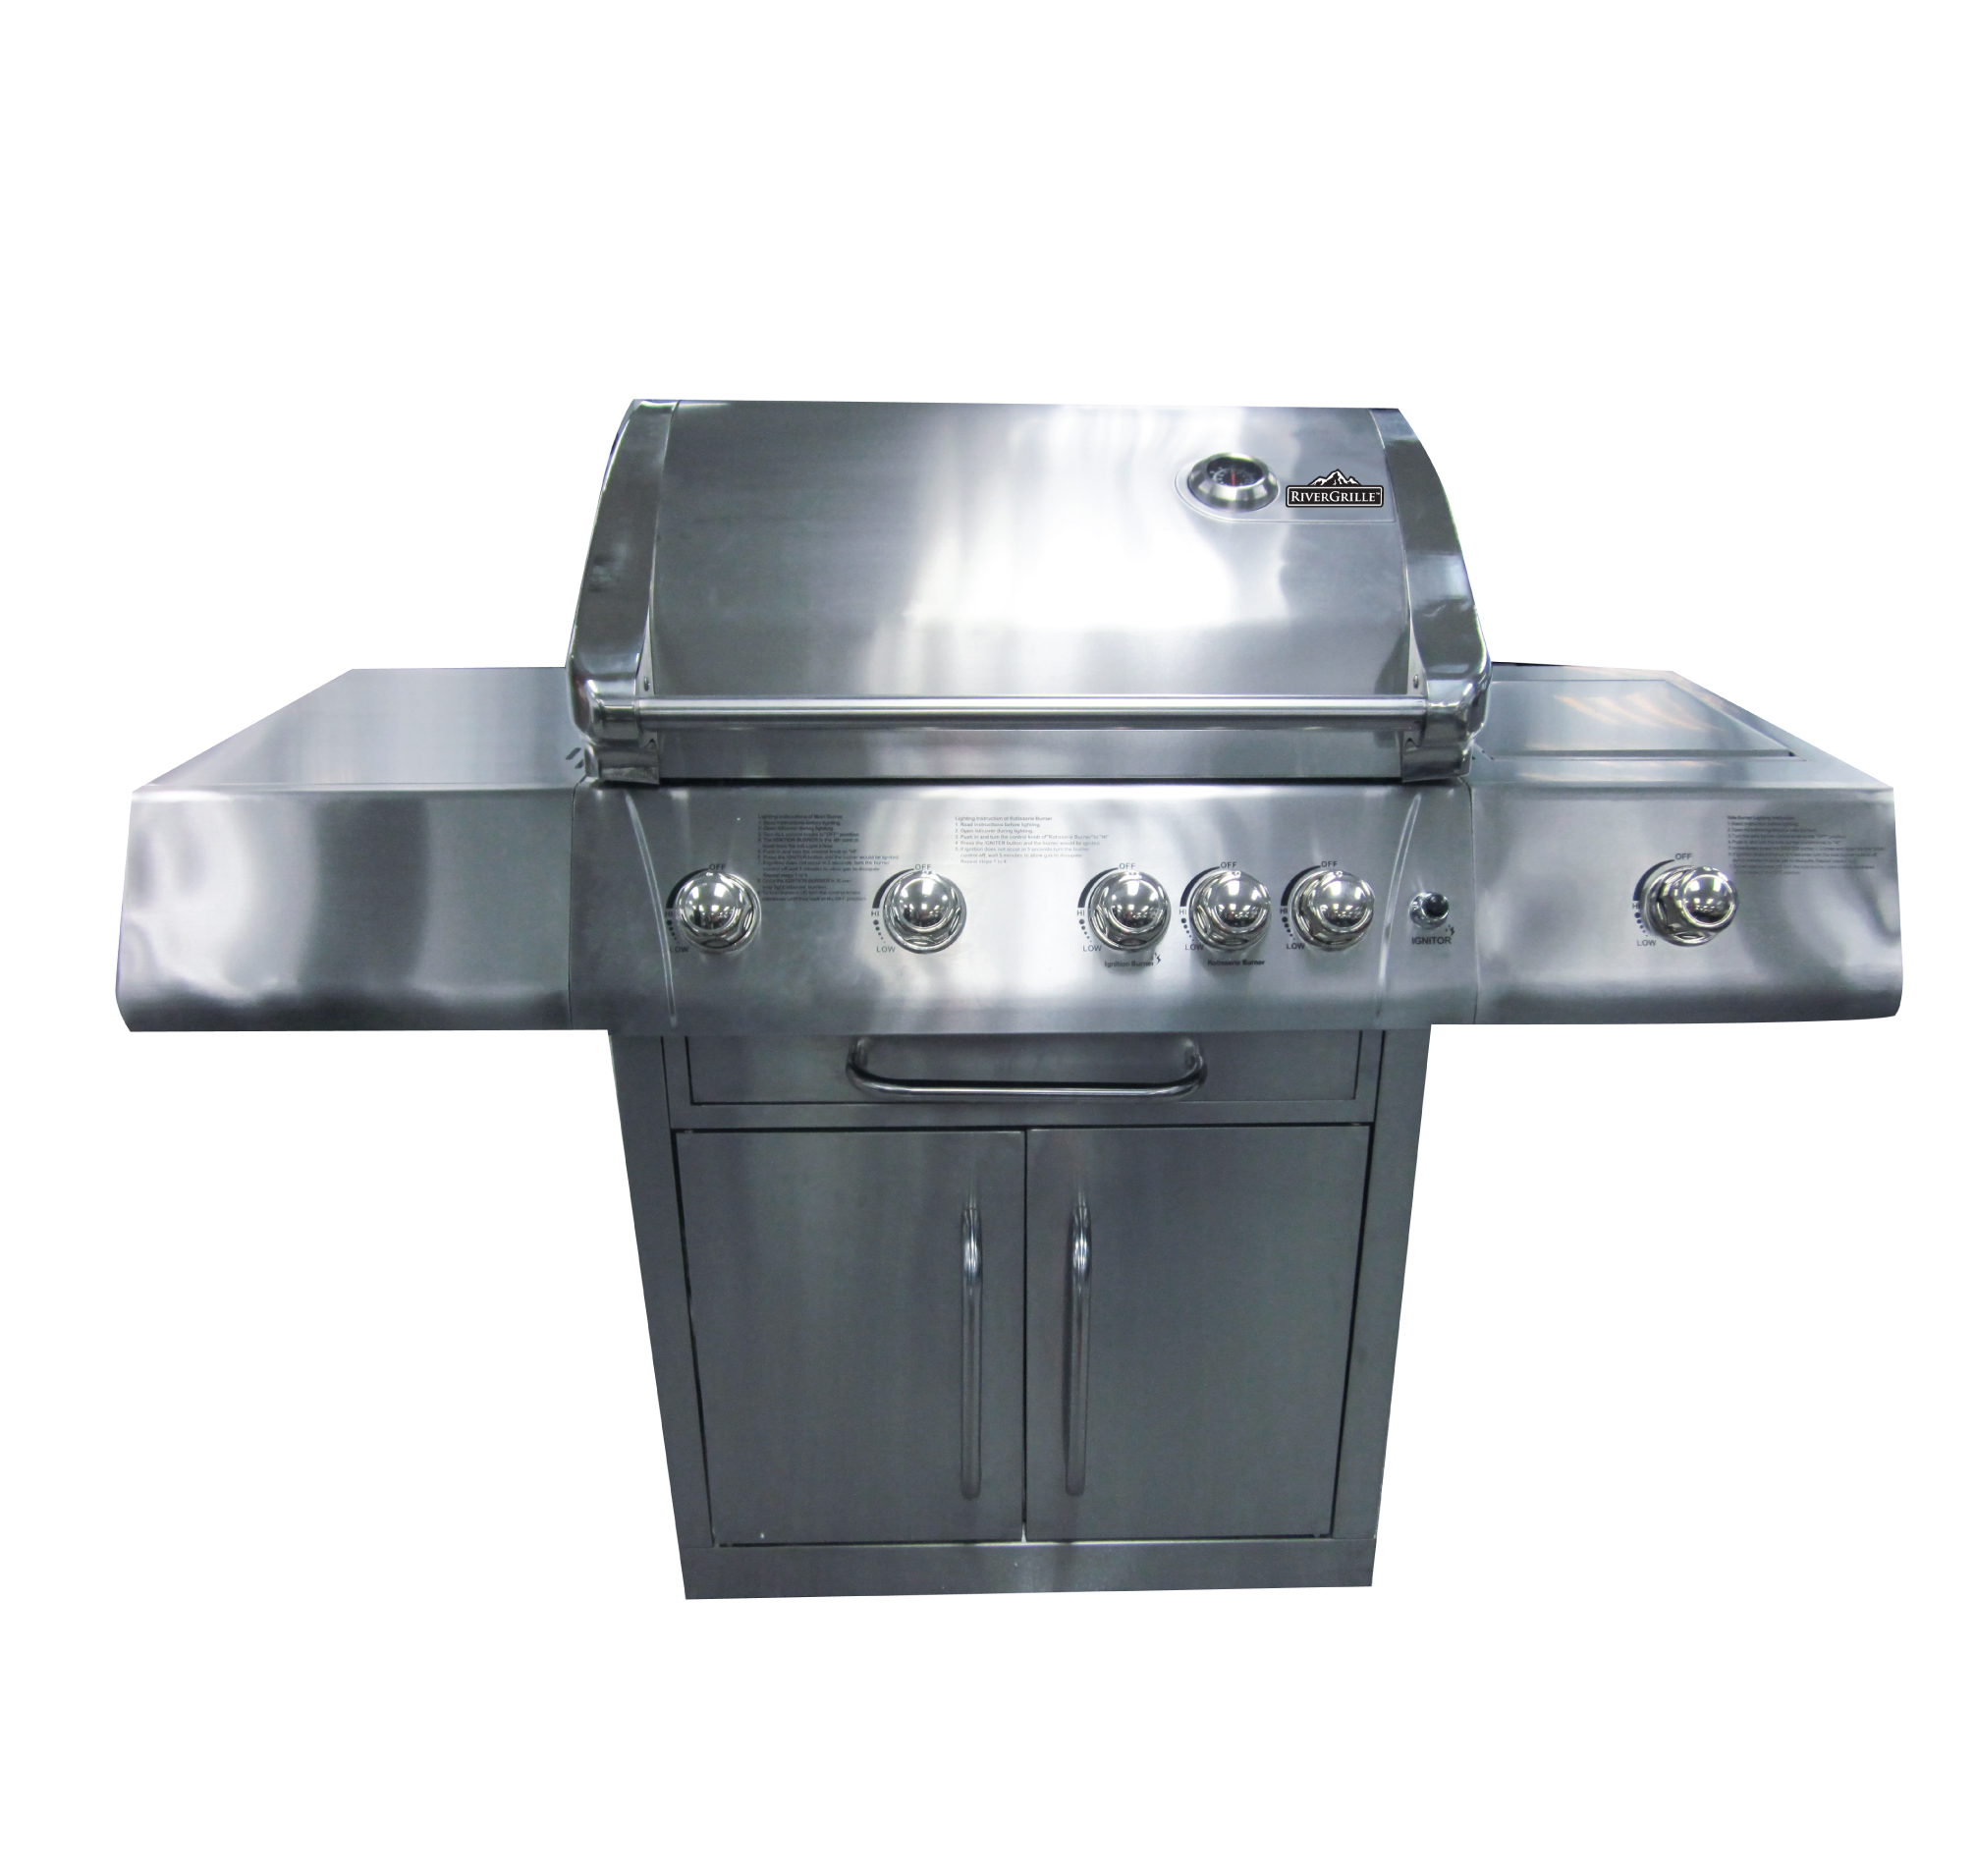 4 Burner+Rotisserie Stainless Steel Gas Grill